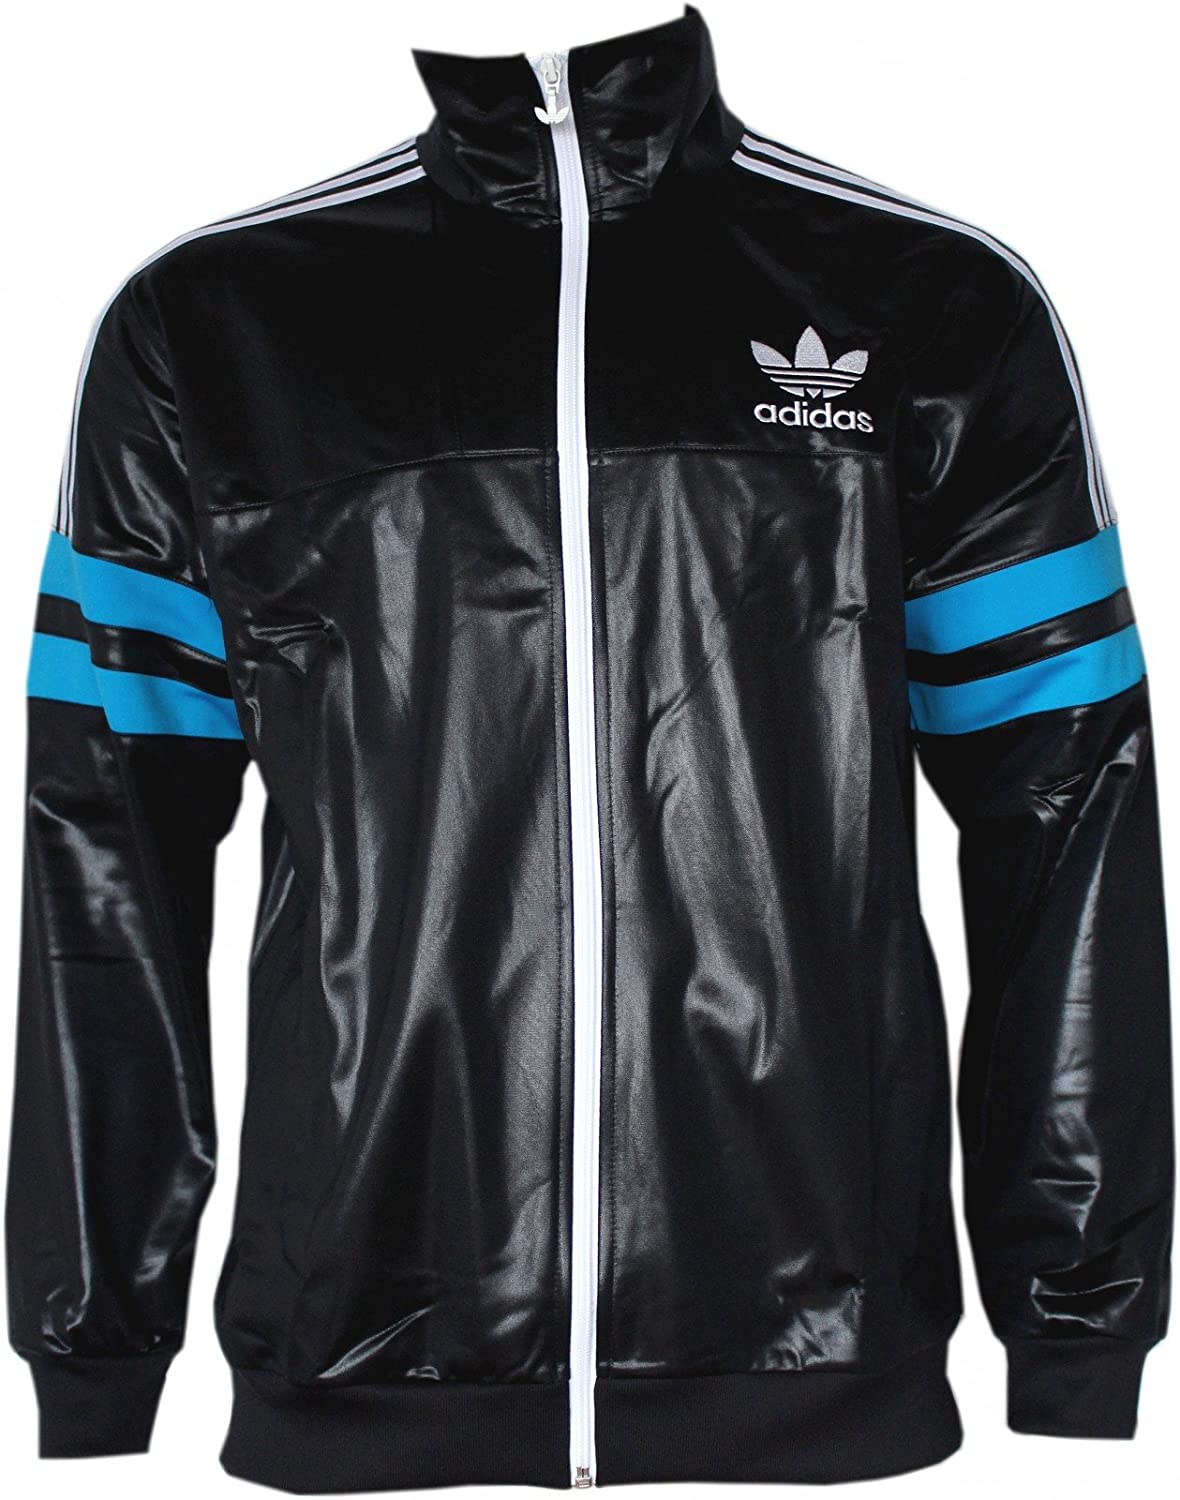 241286c60229 Adidas Originals Men s Air Force Black Chile 62 Retro Flock Zip Up Track  Top Jacket (X Small)  Amazon.co.uk  Sports   Outdoors